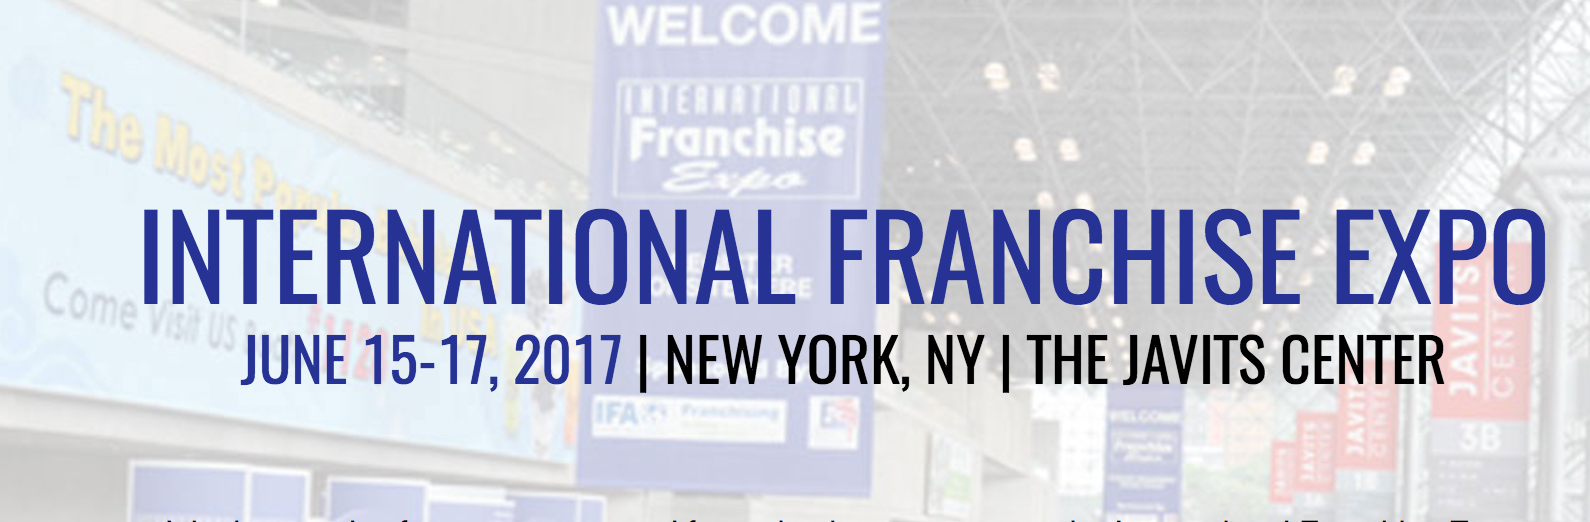 Leading Franchise Expo